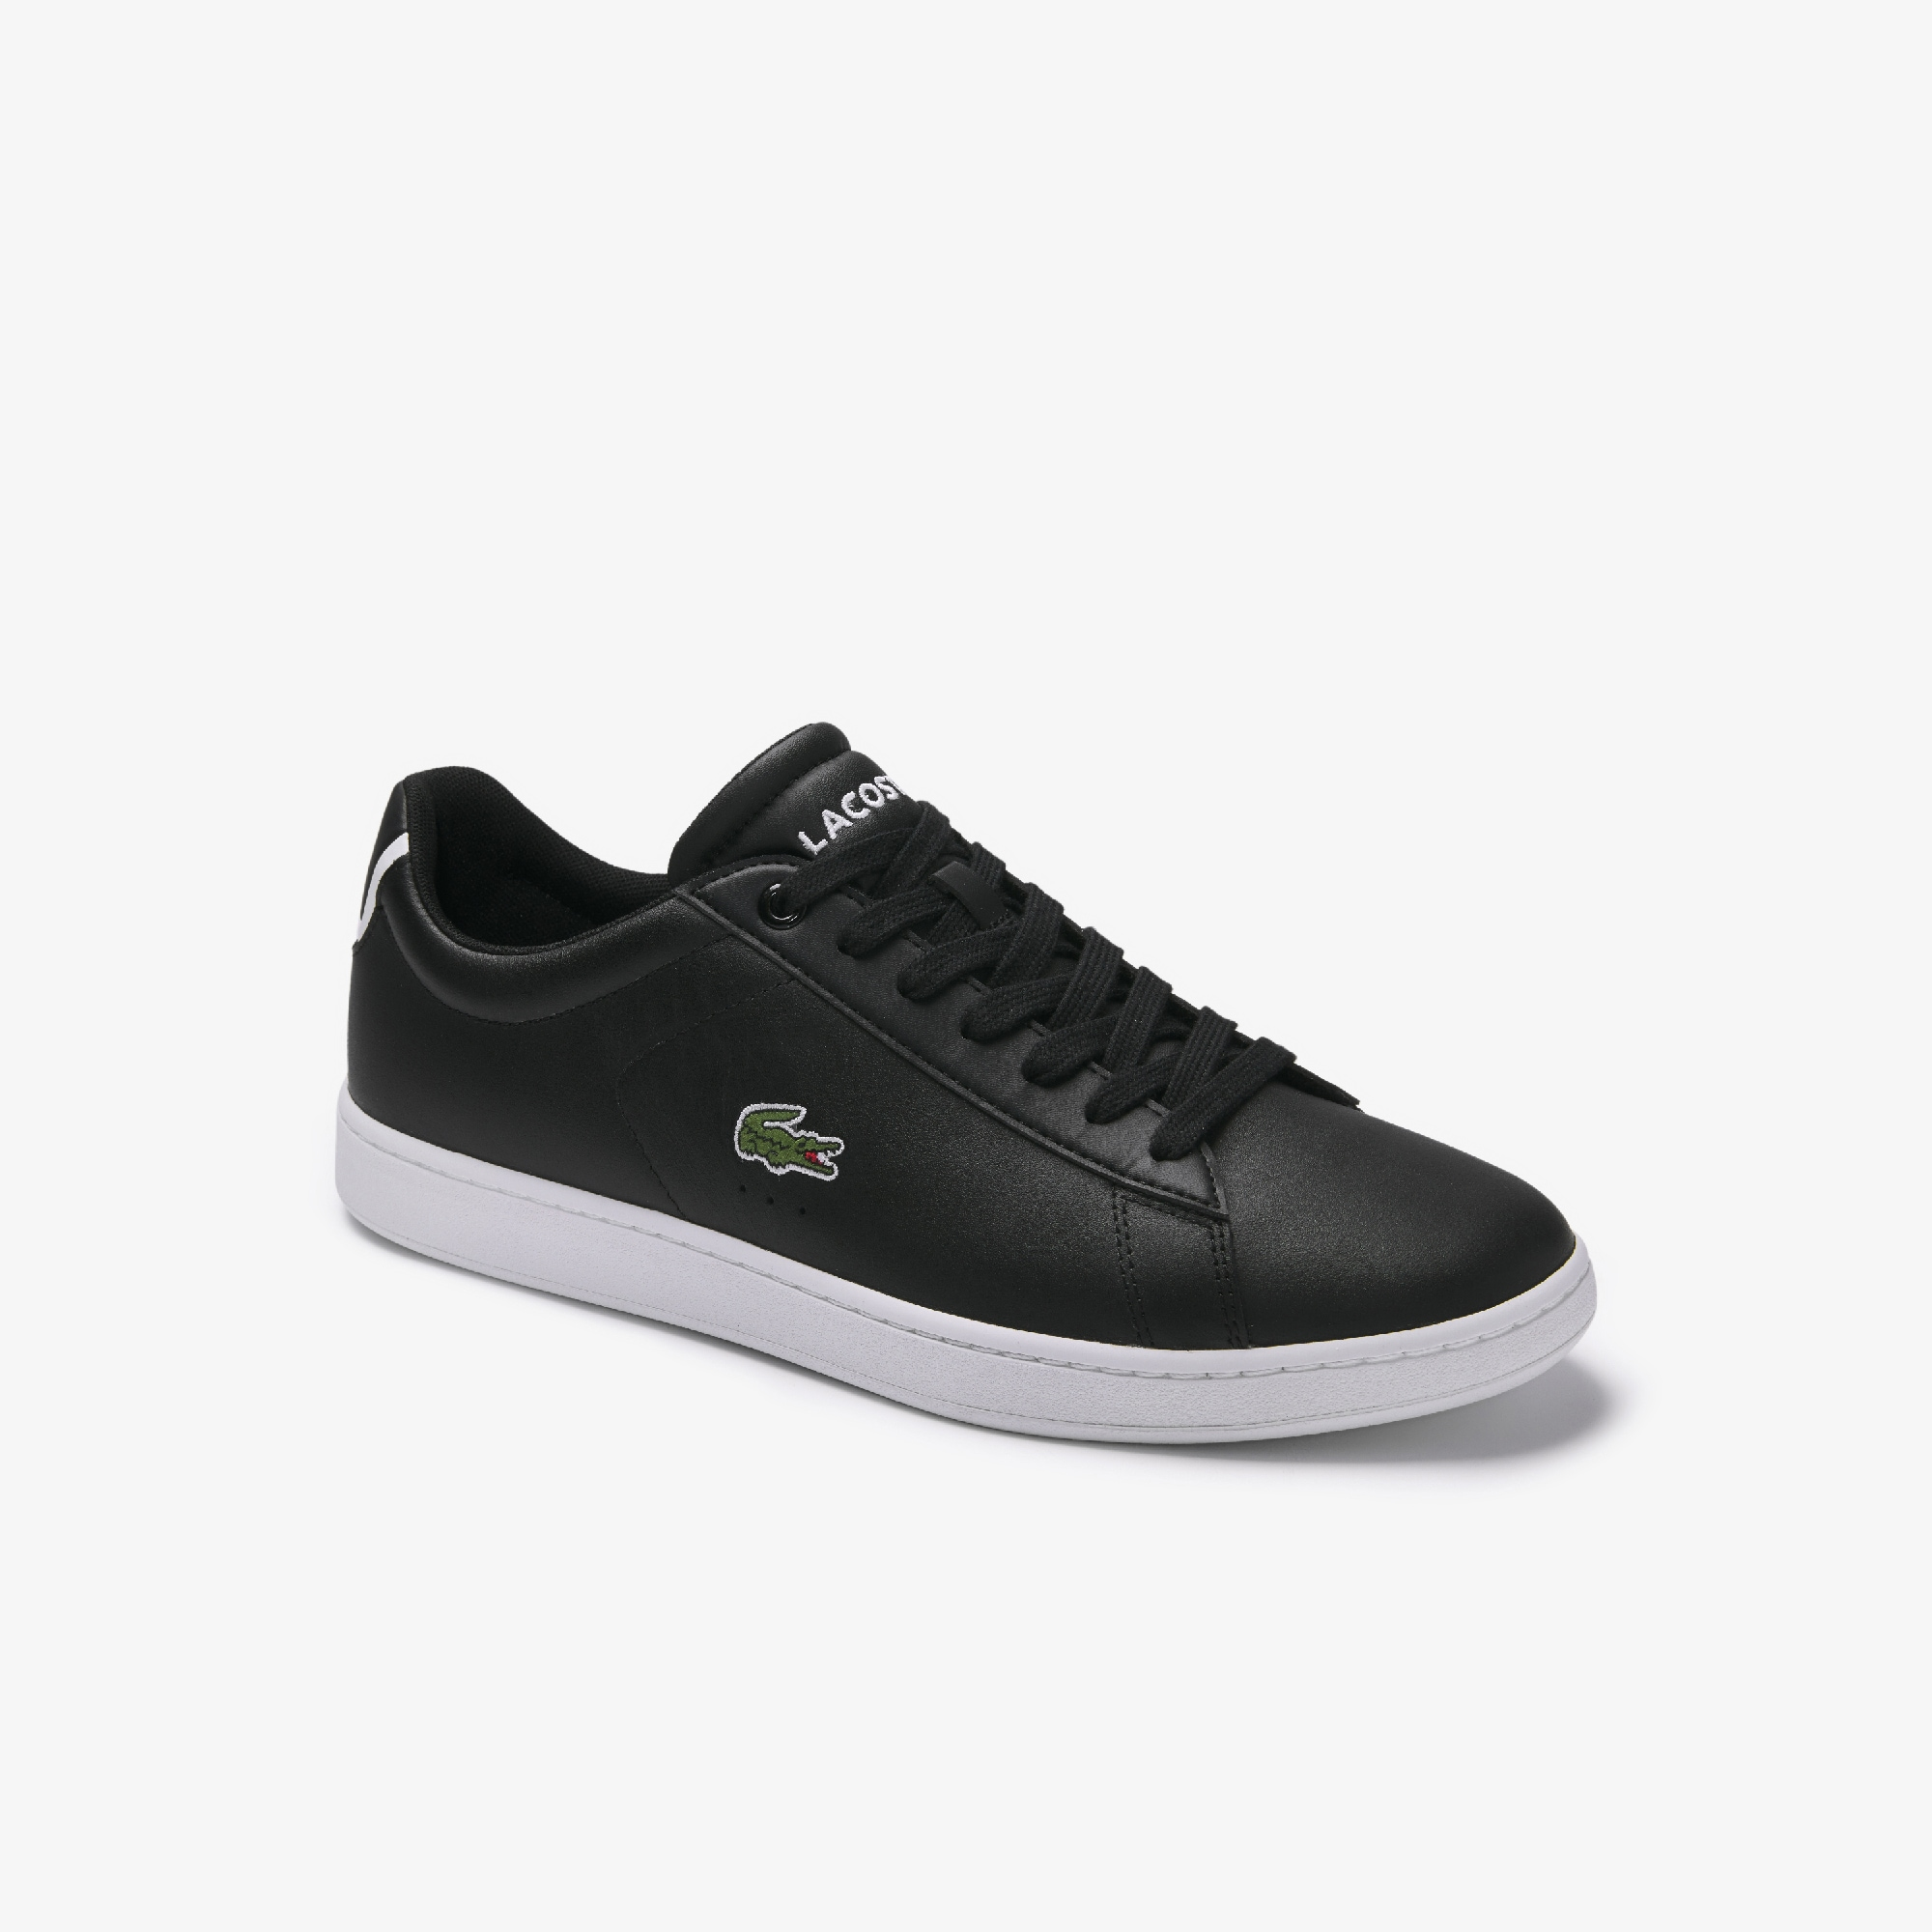 77f57f27f6ee + 2 colors · Men s Carnaby Evo Premium Leather Trainers